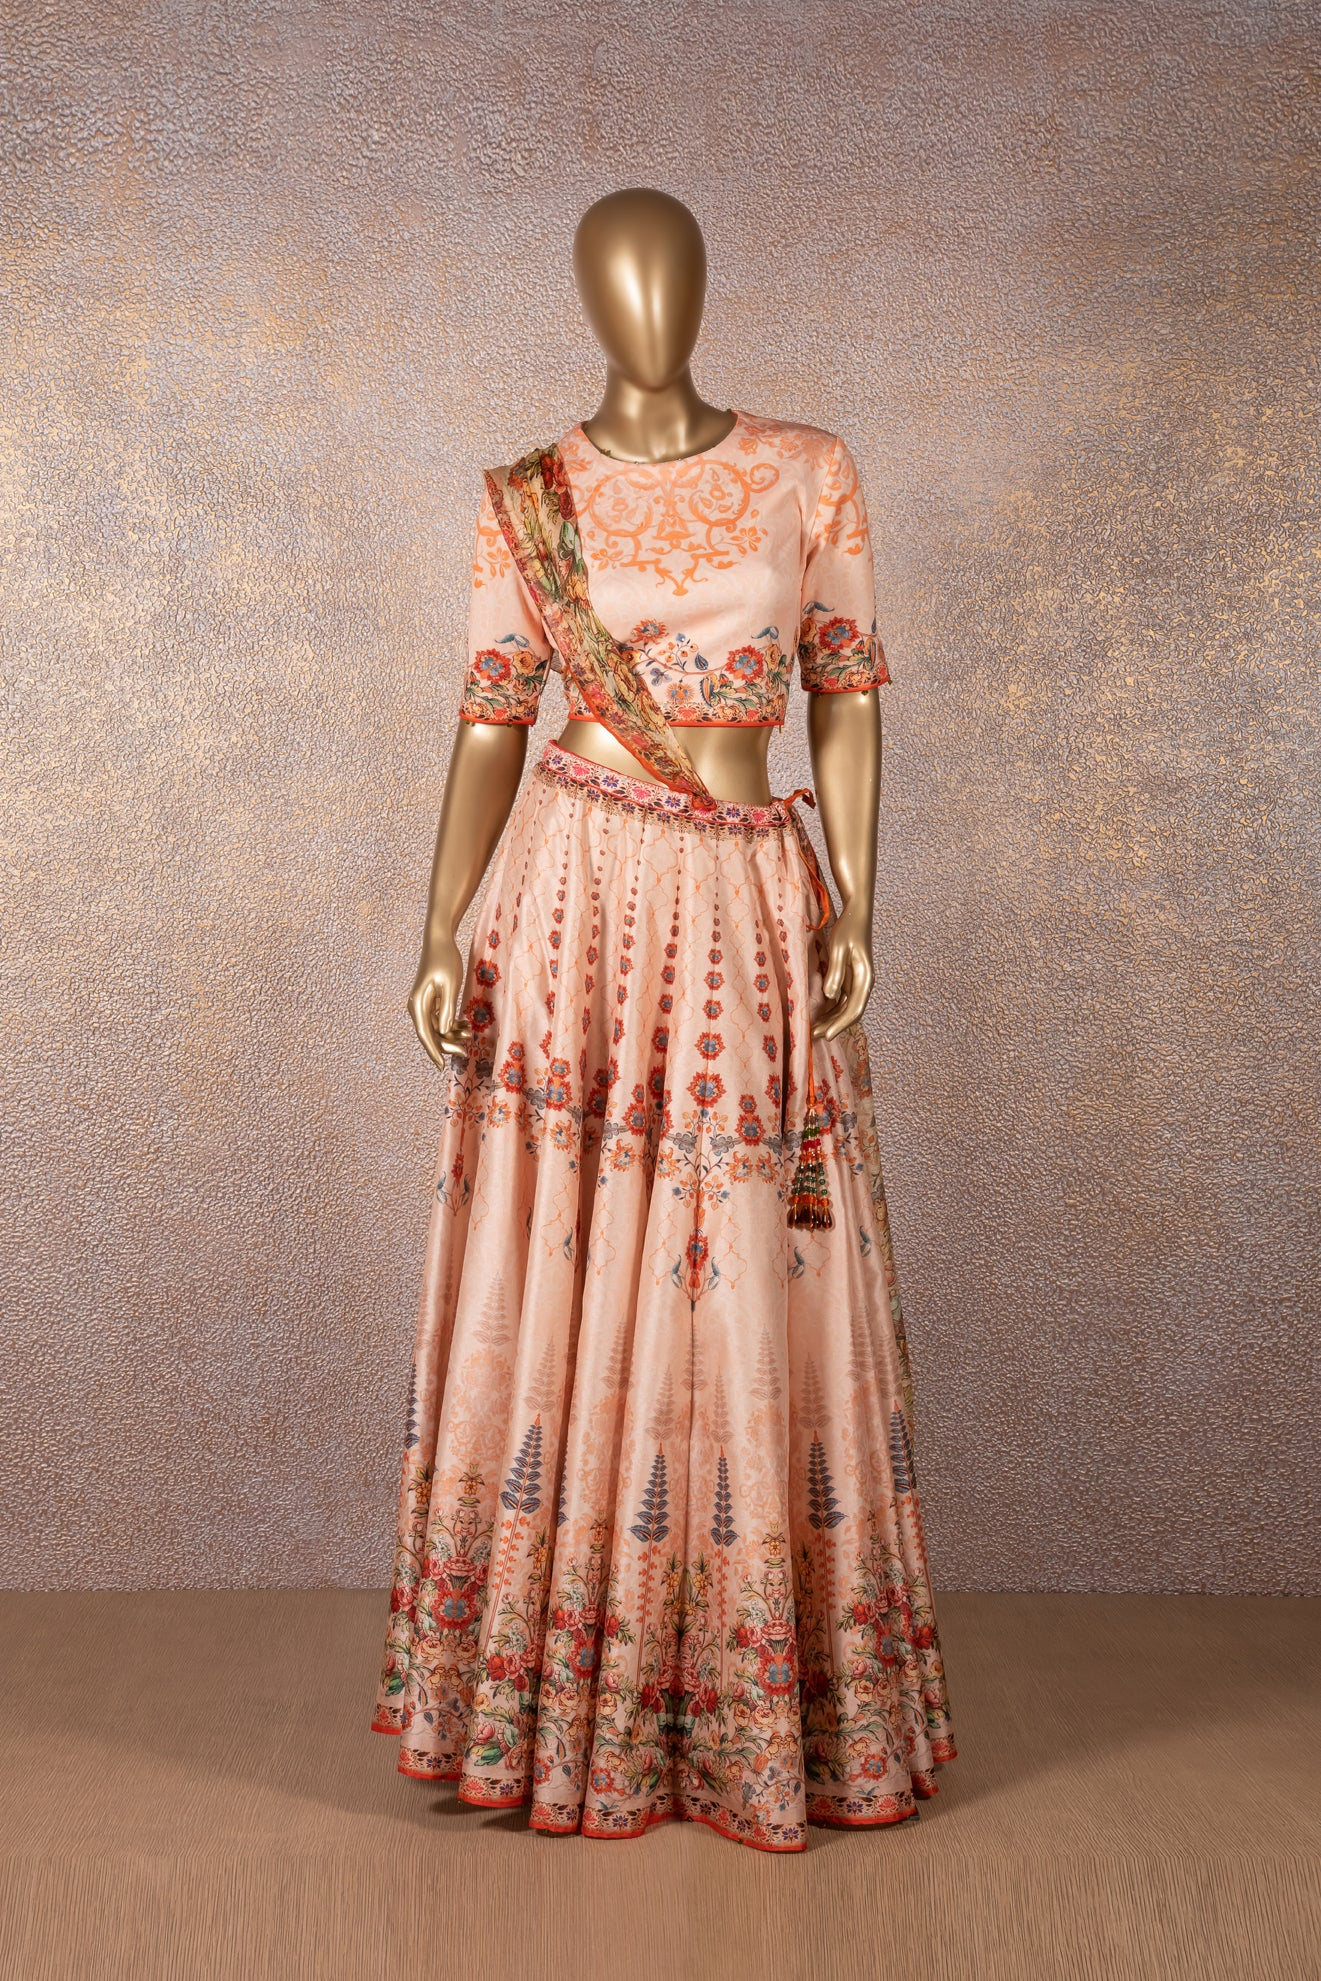 RAJDEEP RANAWAT - Peach Lehenga Set